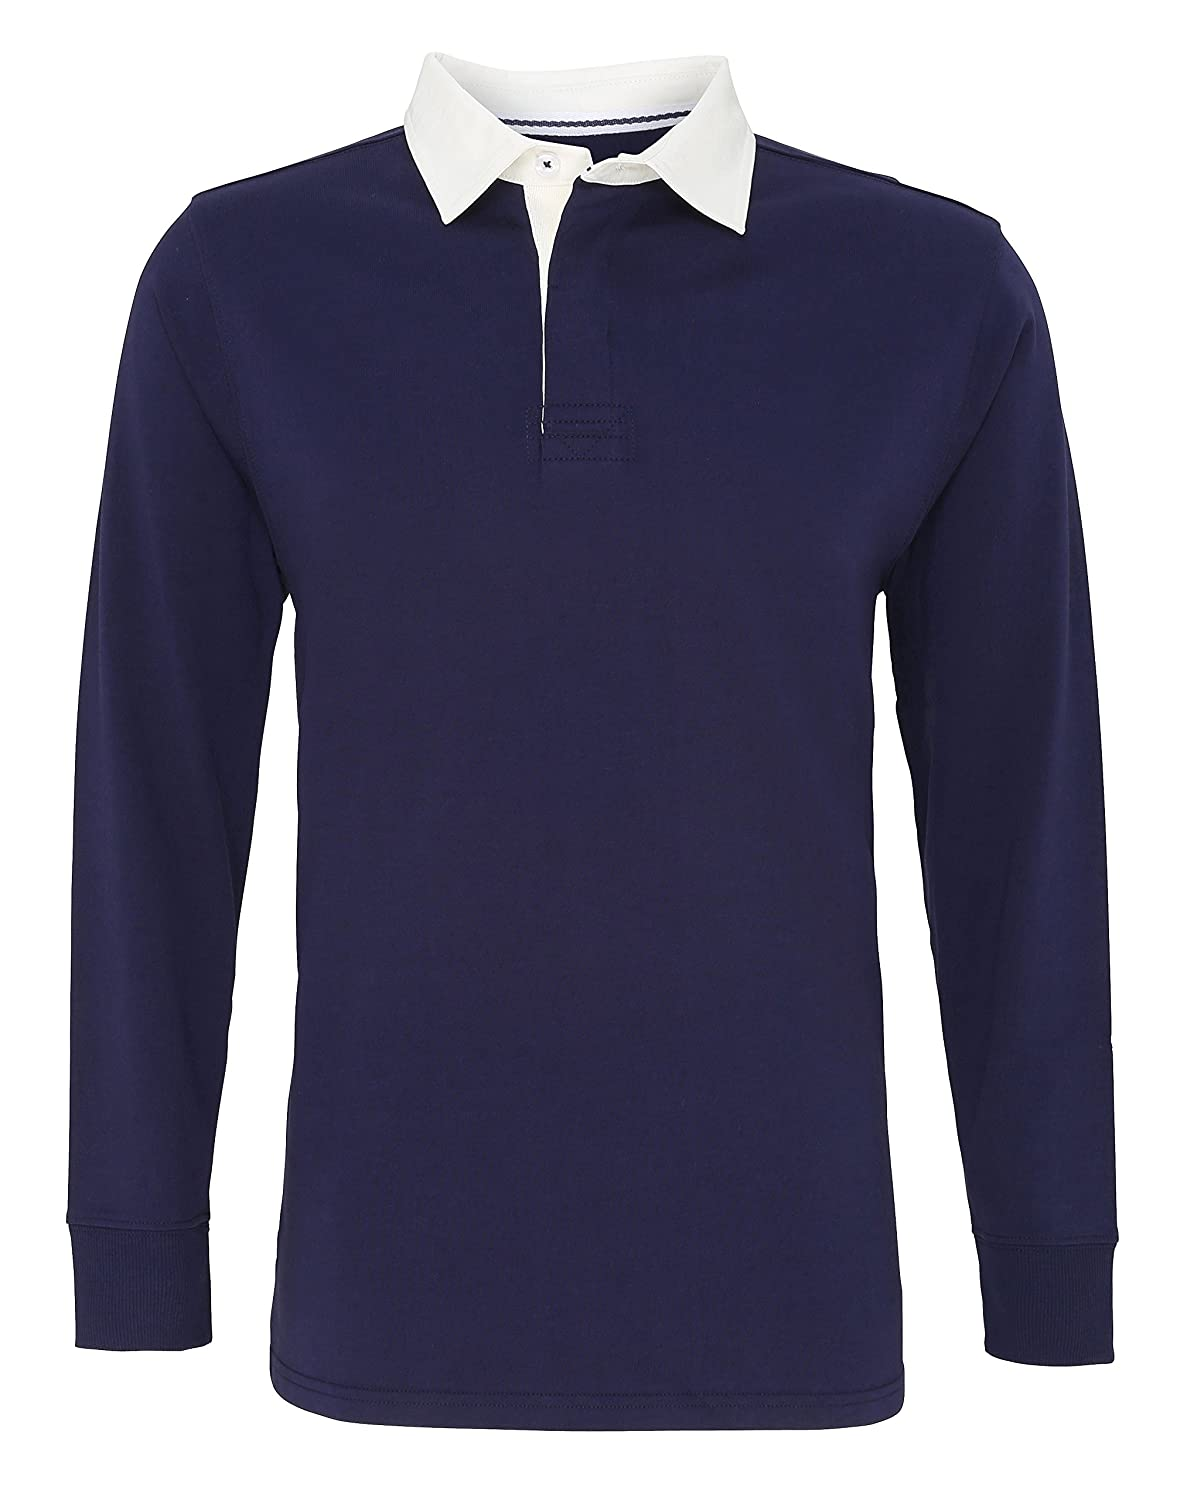 Asquith Fox Men's Classic Fit Long Sleeve Vintage Rugby Shirt AQ040